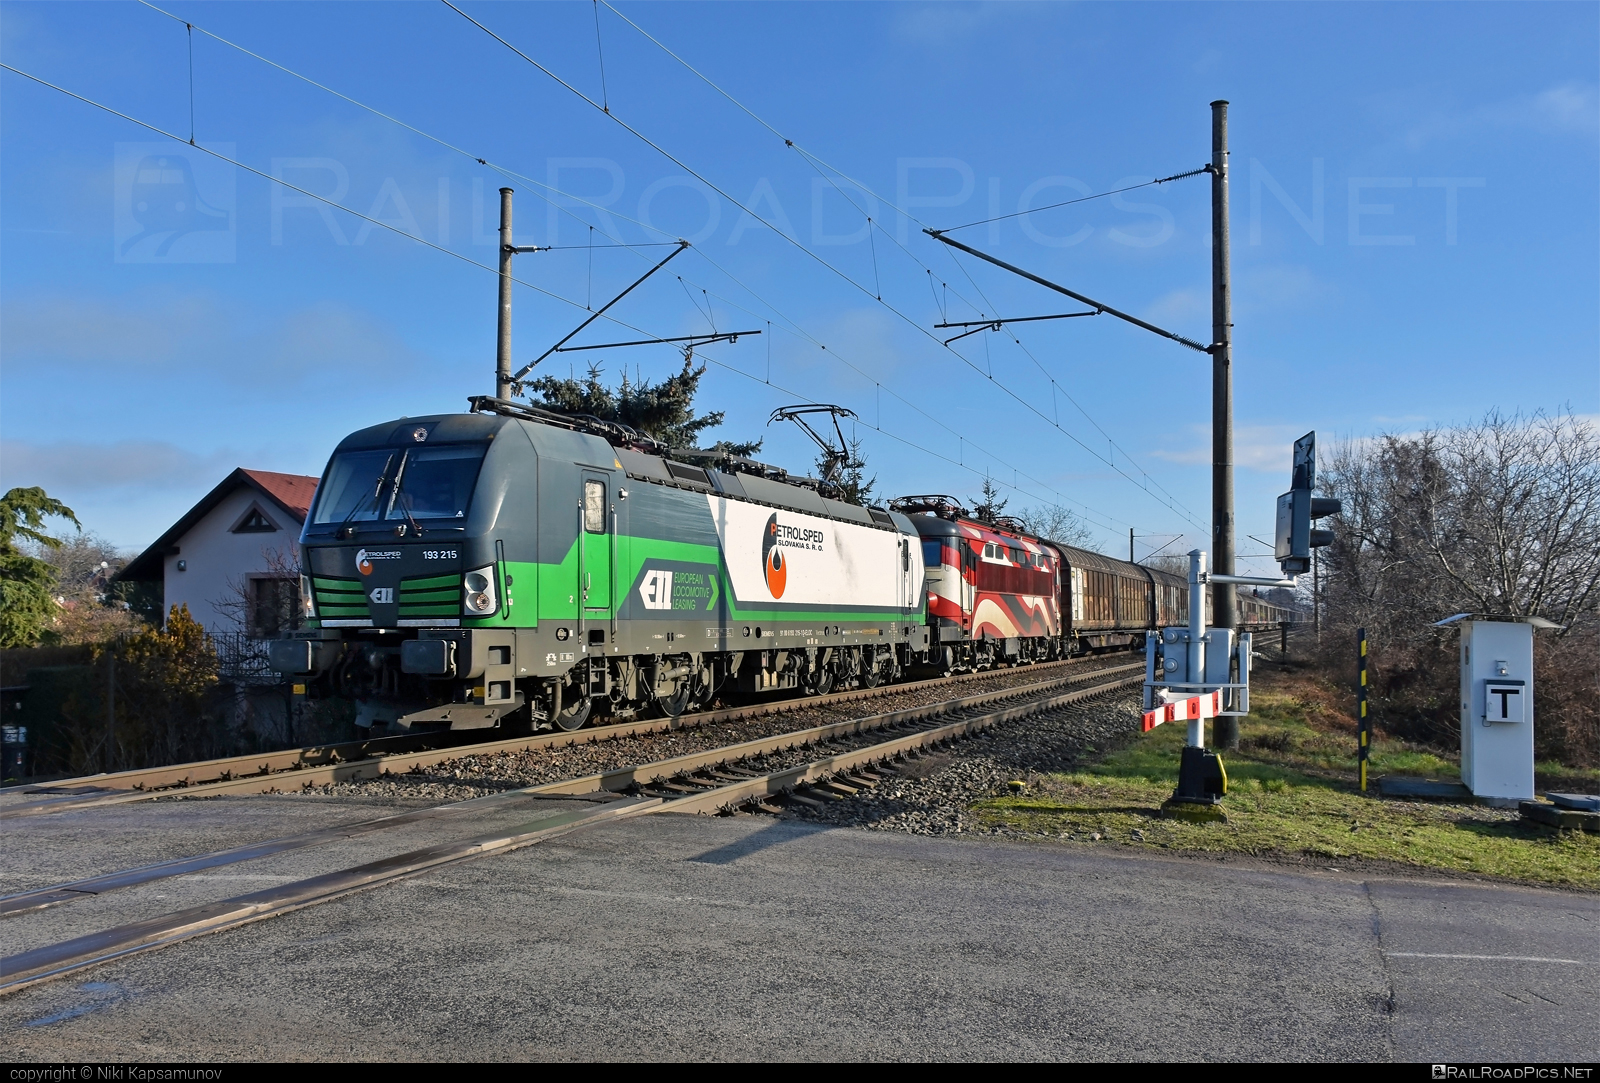 Siemens Vectron MS - 193 215 operated by PETROLSPED Slovakia s.r.o. #ell #ellgermany #eloc #europeanlocomotiveleasing #petrolsped #siemens #siemensvectron #siemensvectronms #vectron #vectronms